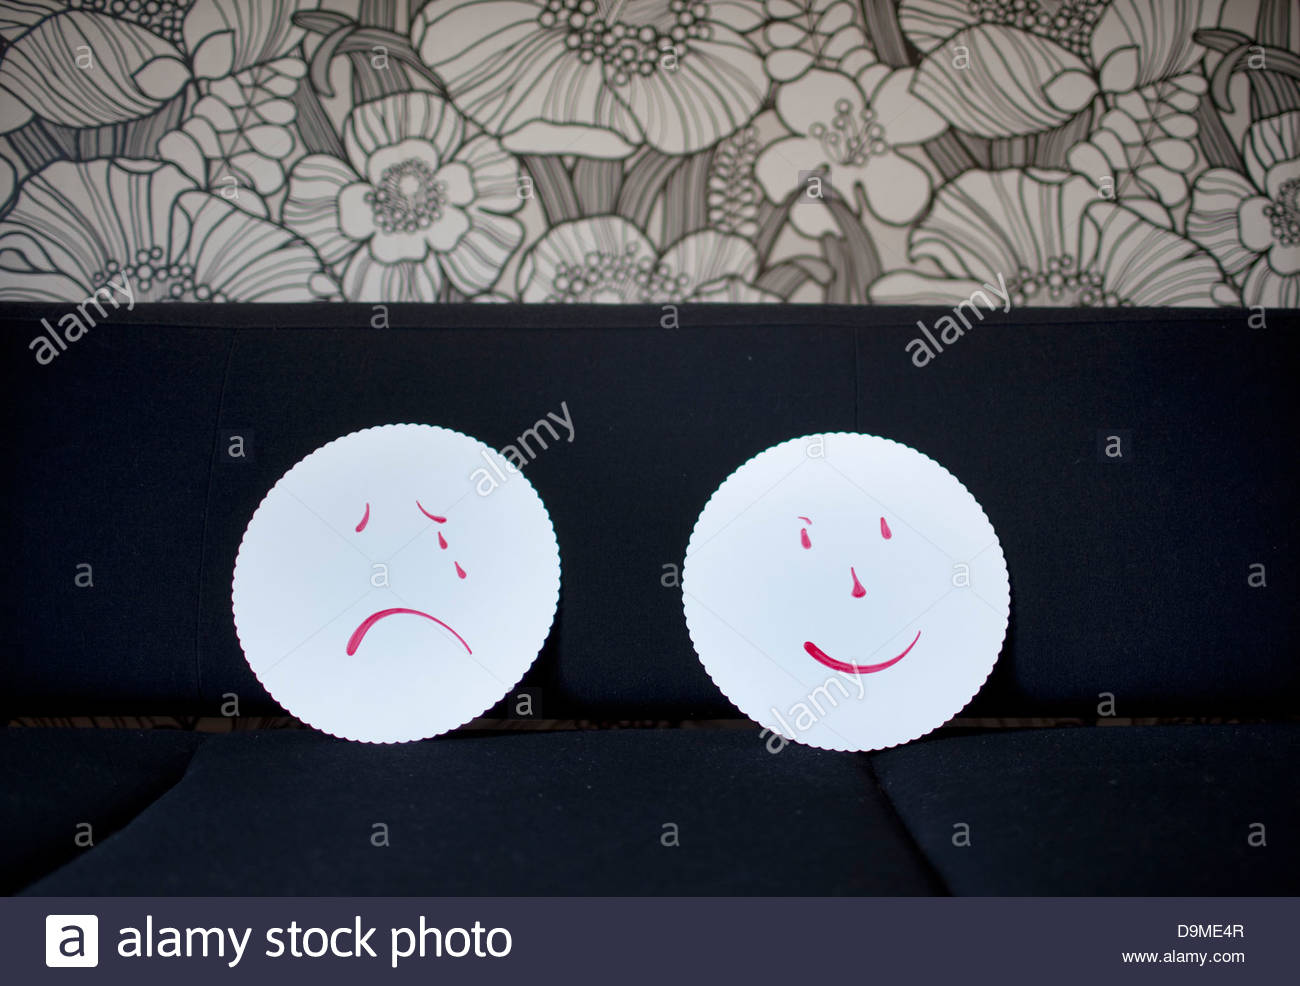 Paintings of smiling and crying faces on a couch - Stock Image